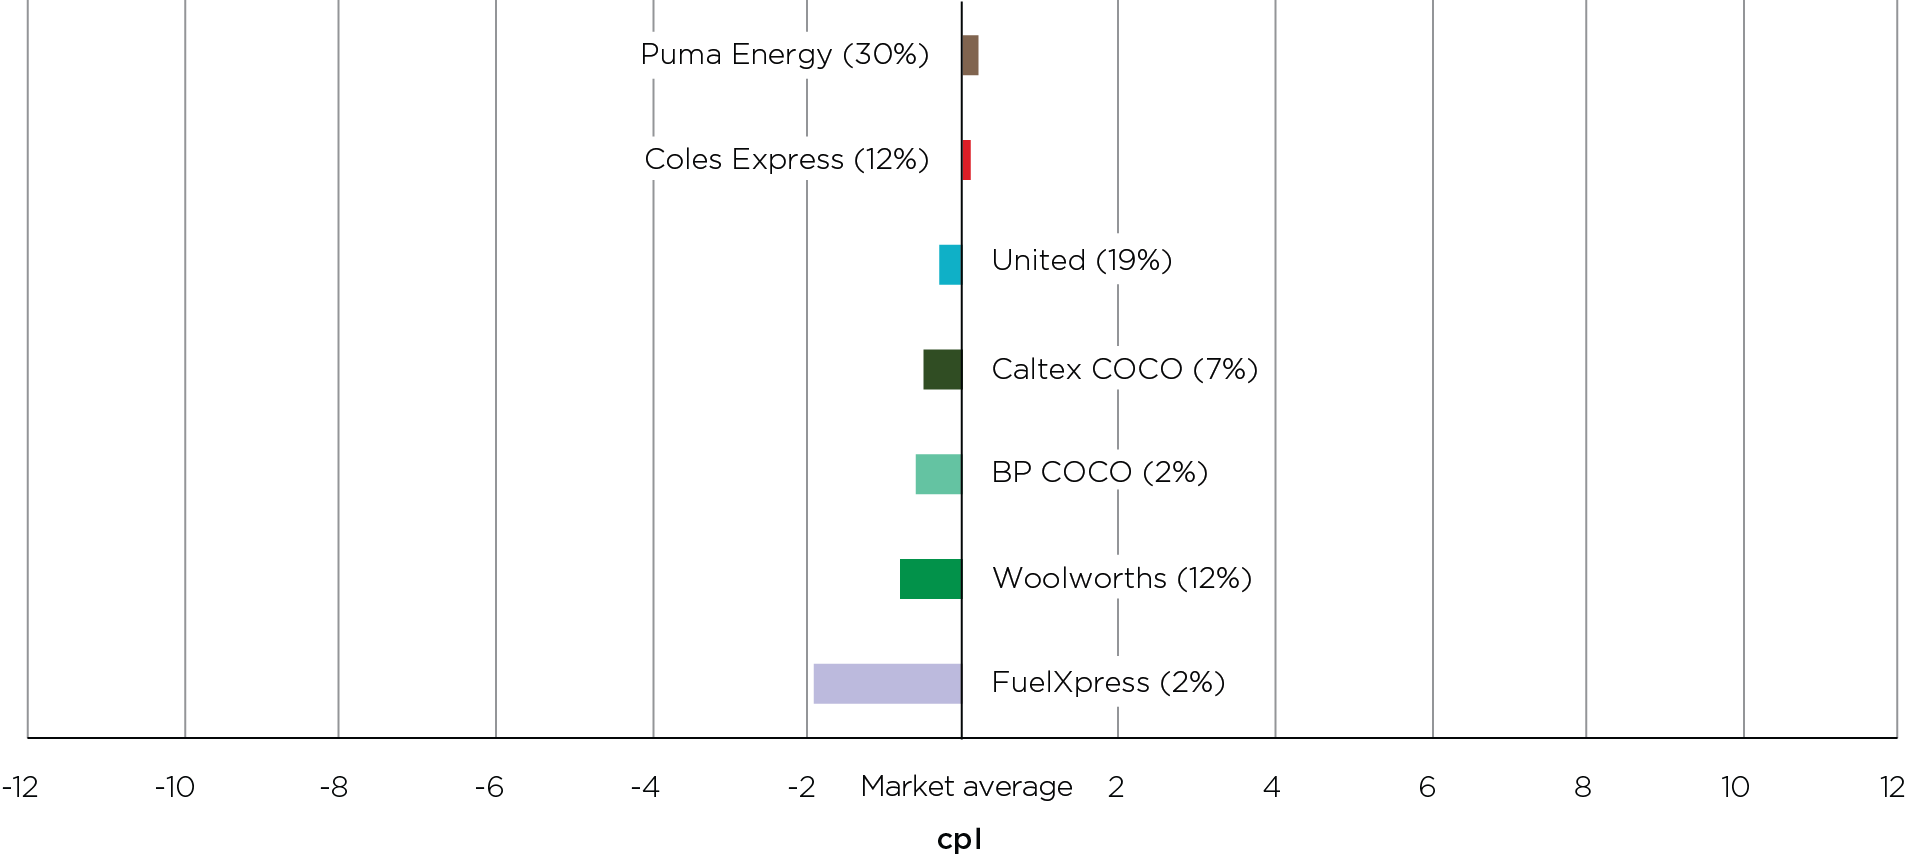 In 2020, Darwin motorists could have saved 2.1 cents per litre by buying petrol at the lowest-priced retailer, which was FuelXpress, rather than the highest-priced retailer, which was Puma Energy.